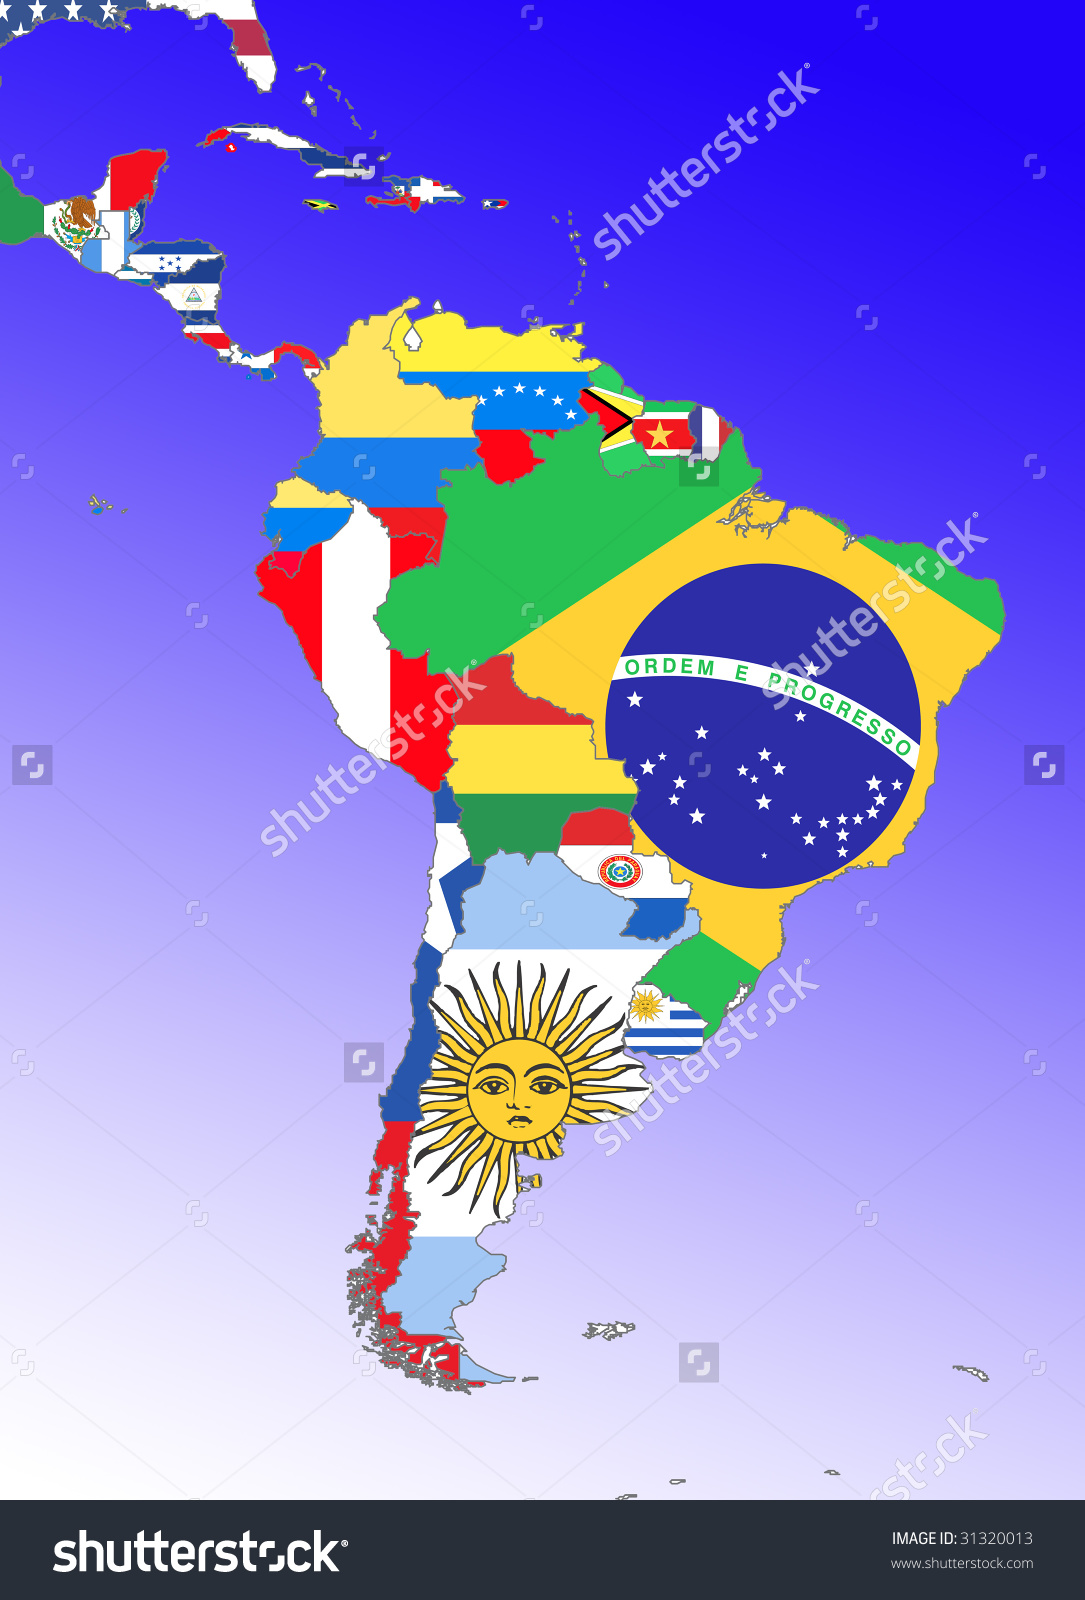 Learn map of latin america and the caribbean